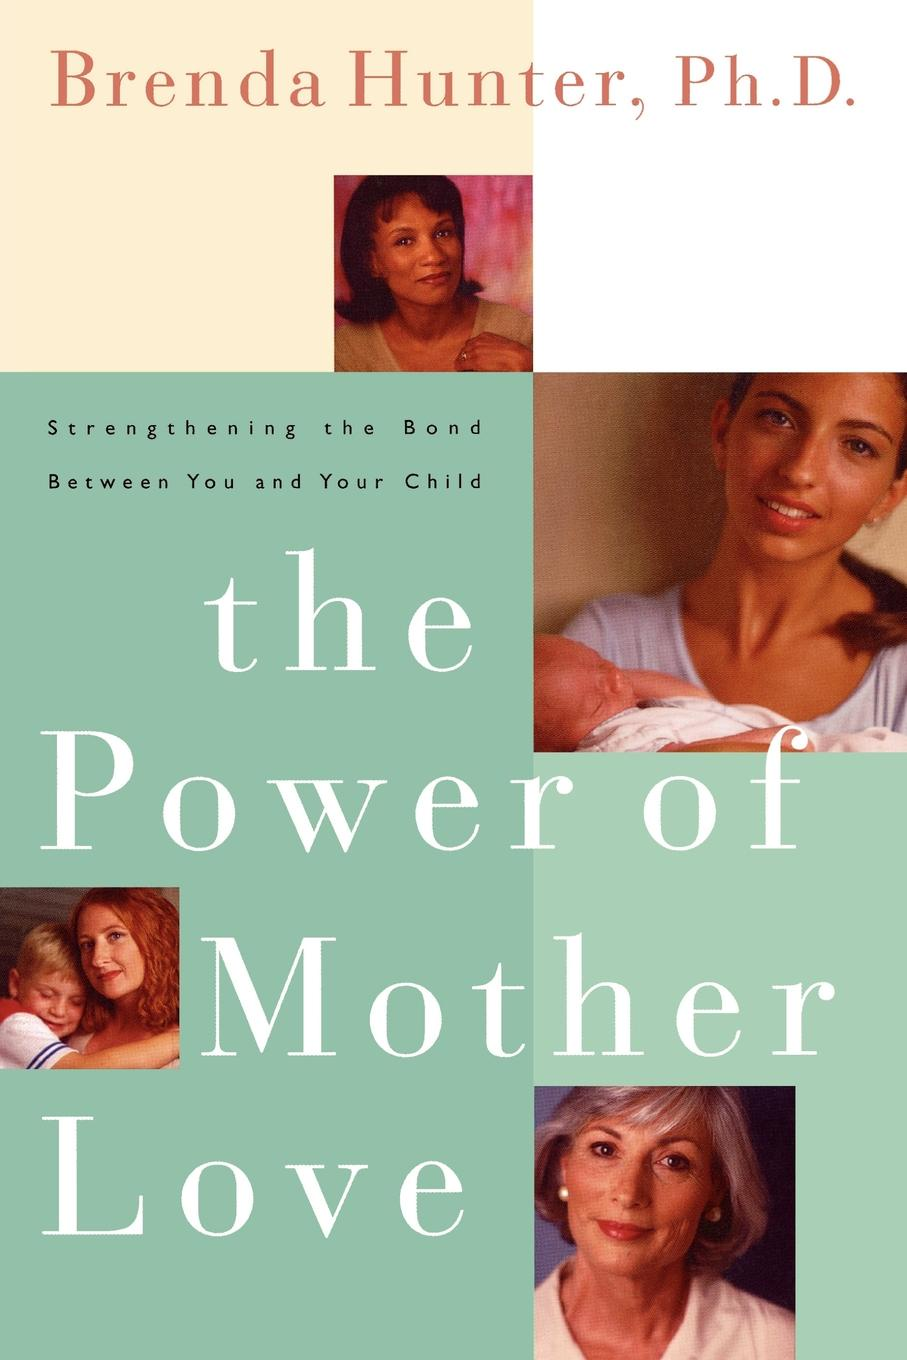 Brenda Hunter, Hunter The Power of Mother Love. Strengthening the Bond Between You and Your Child